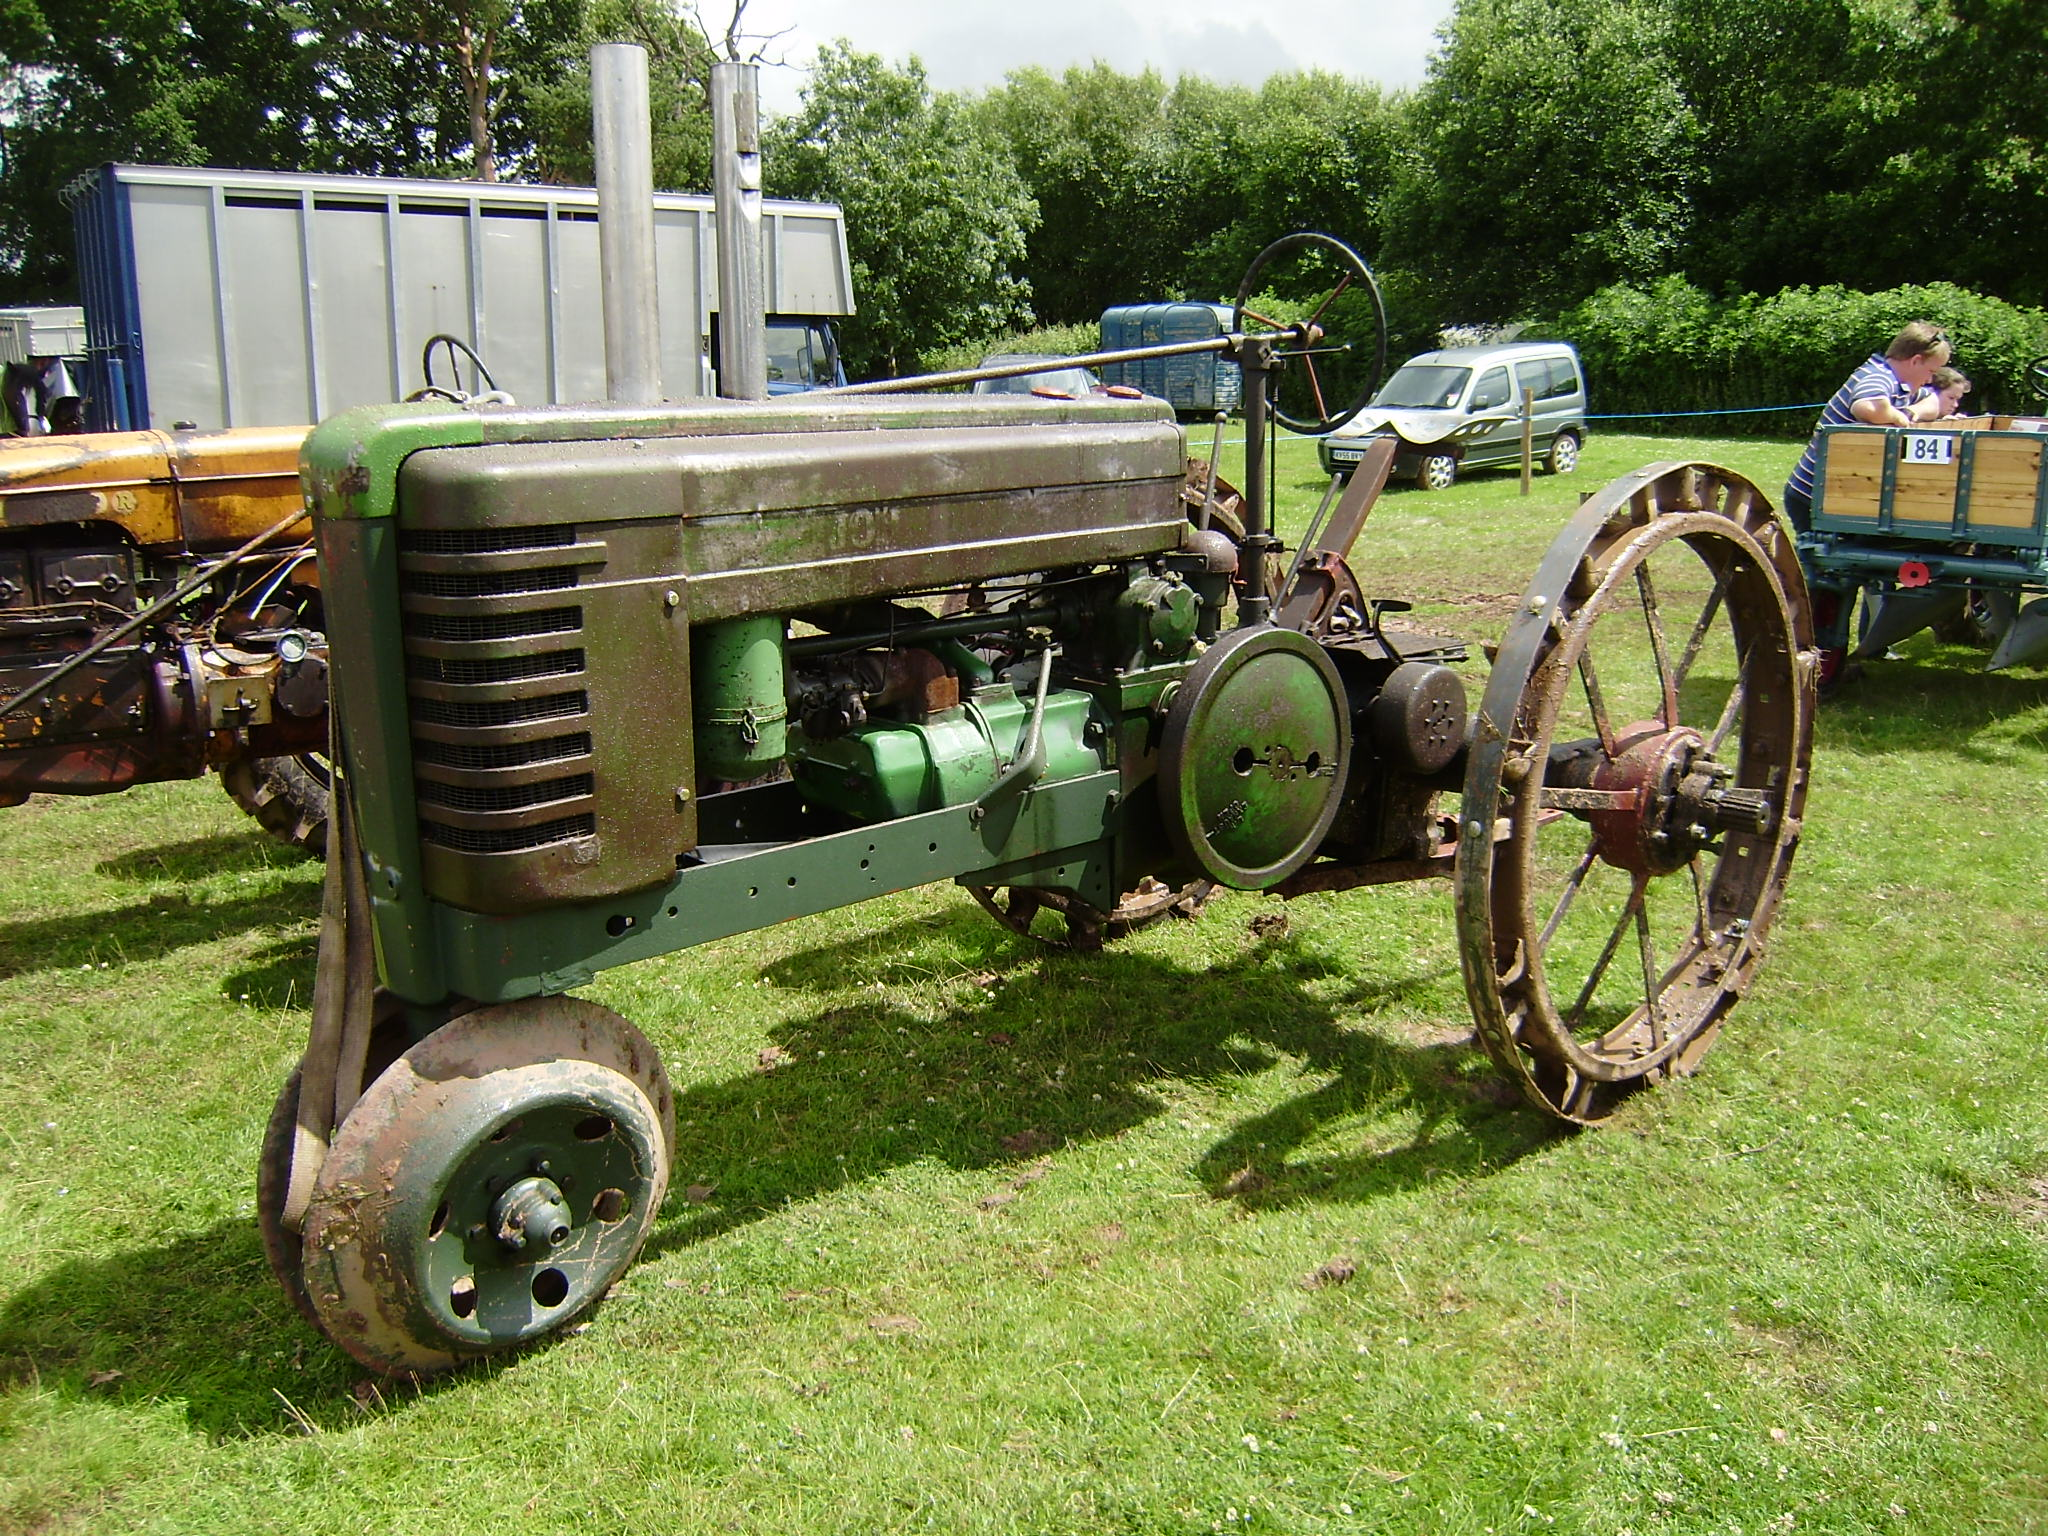 List Of John Deere Tractors Tractor Construction Plant Wiki Farm 2240 Wiring Diagram Model B On Row Crop Lugged Wheels Part Restored At Bromyard Show 2008